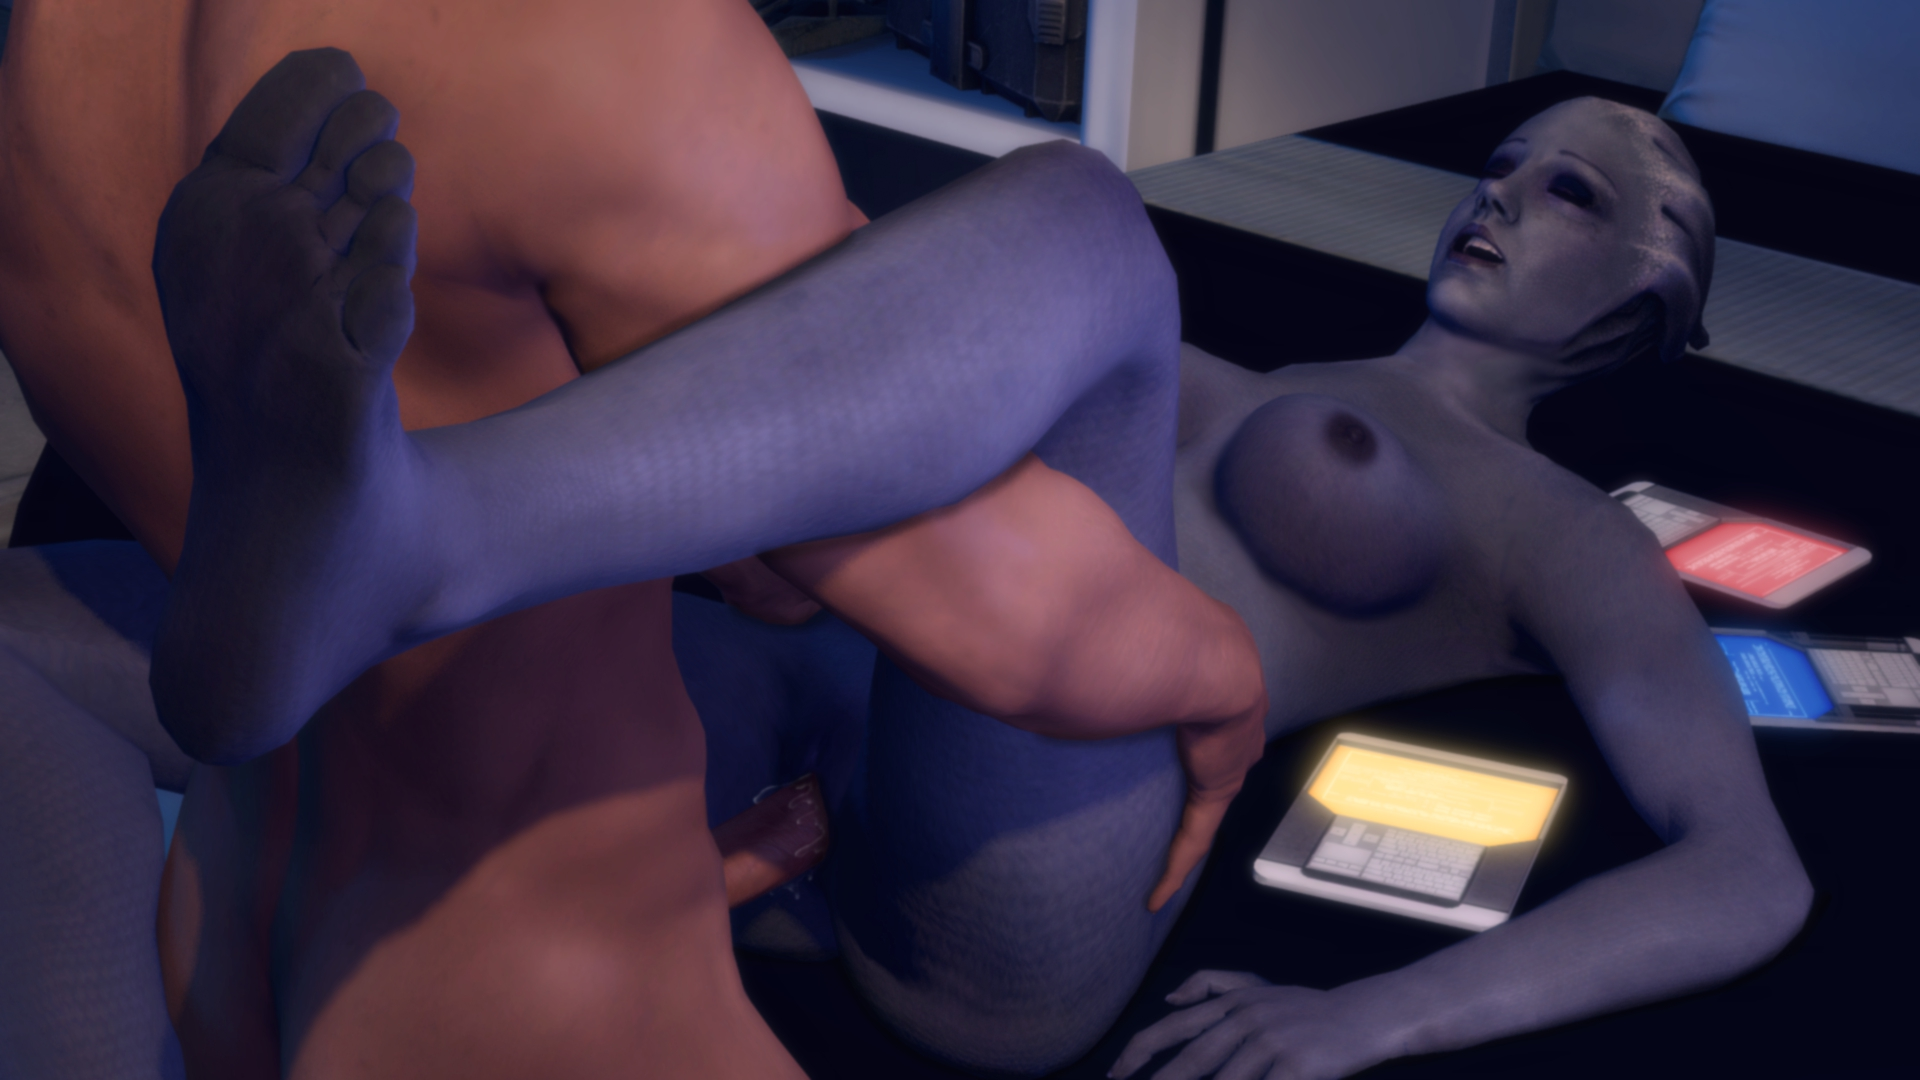 Mass effect hentai sex galleries fucked pic